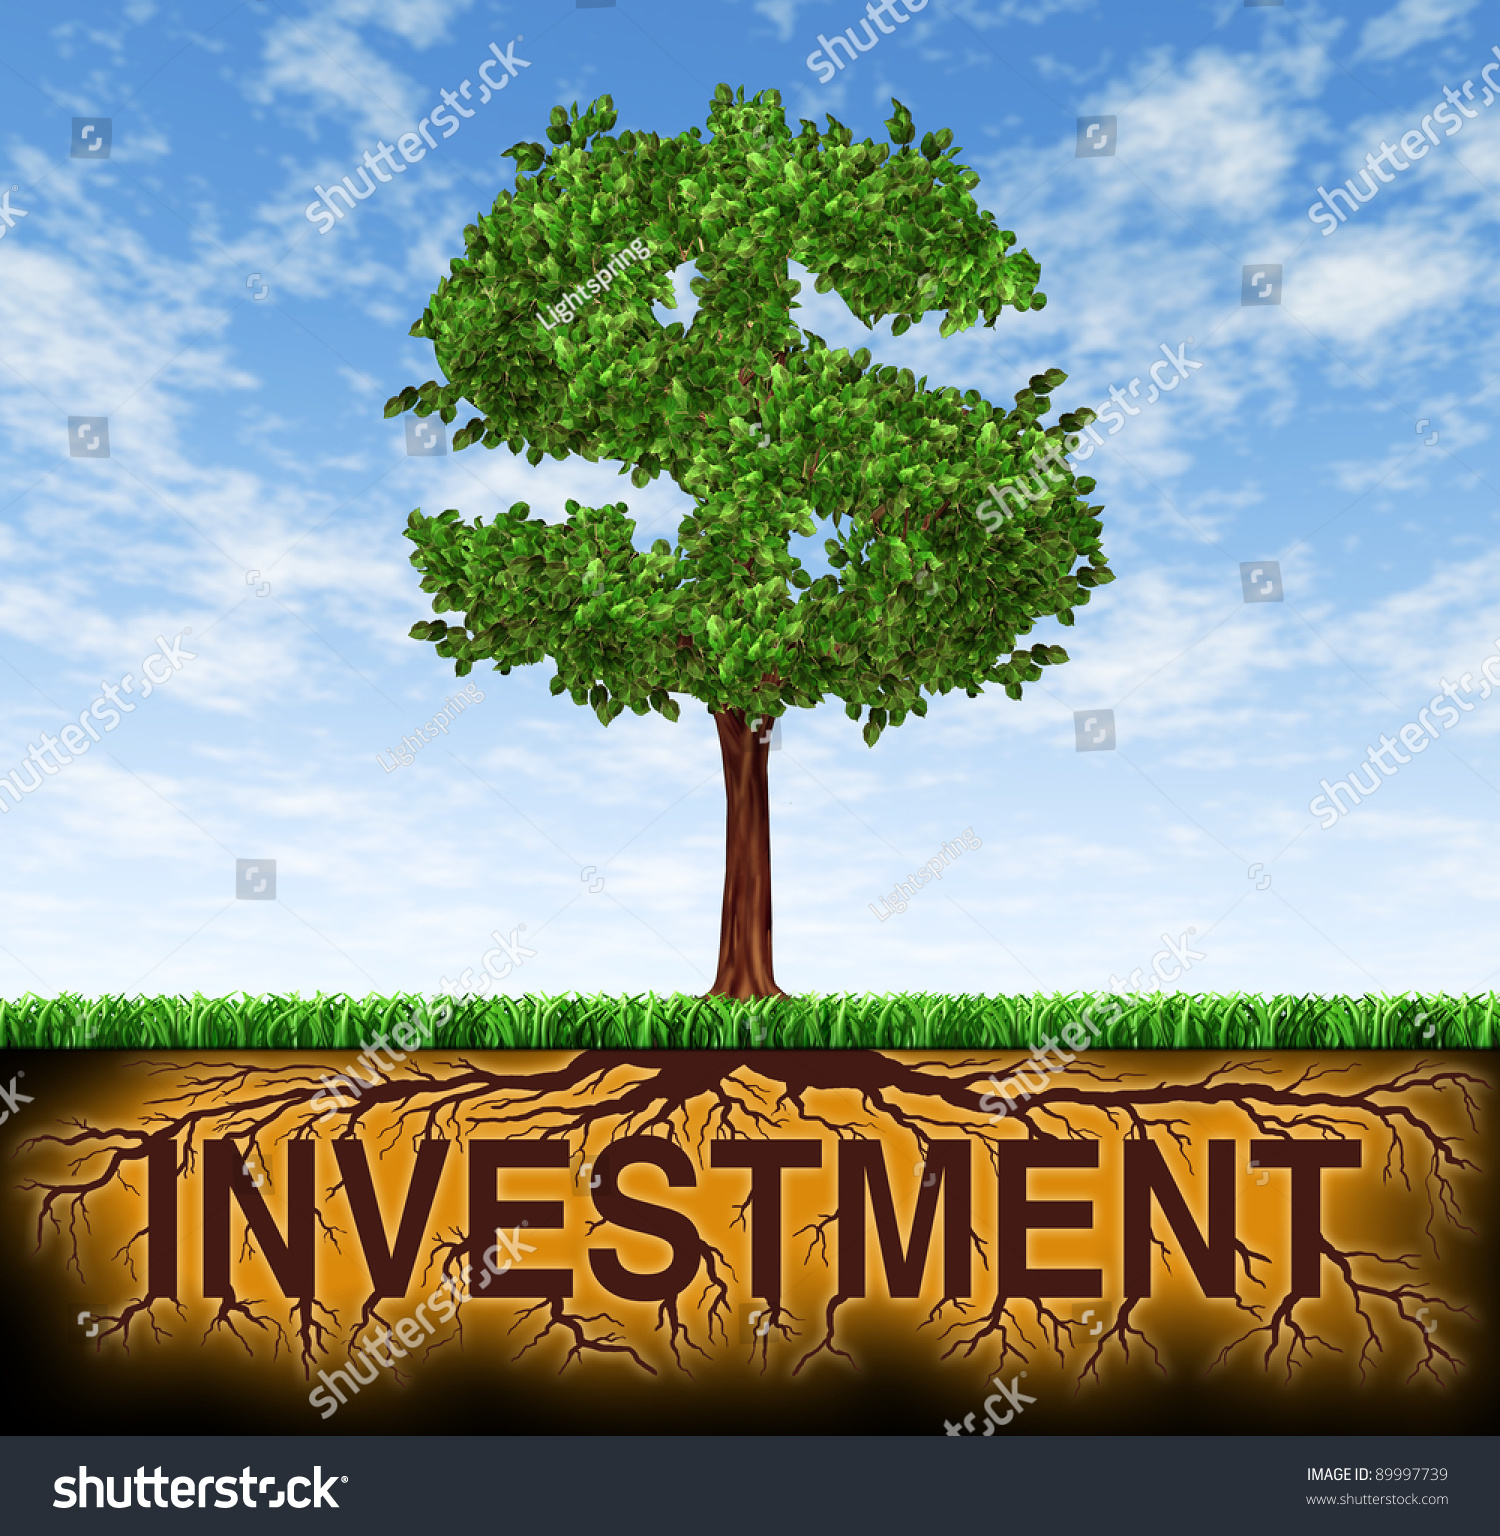 Finance Tree: Investment And Financial Growth Symbol With A Tree In The